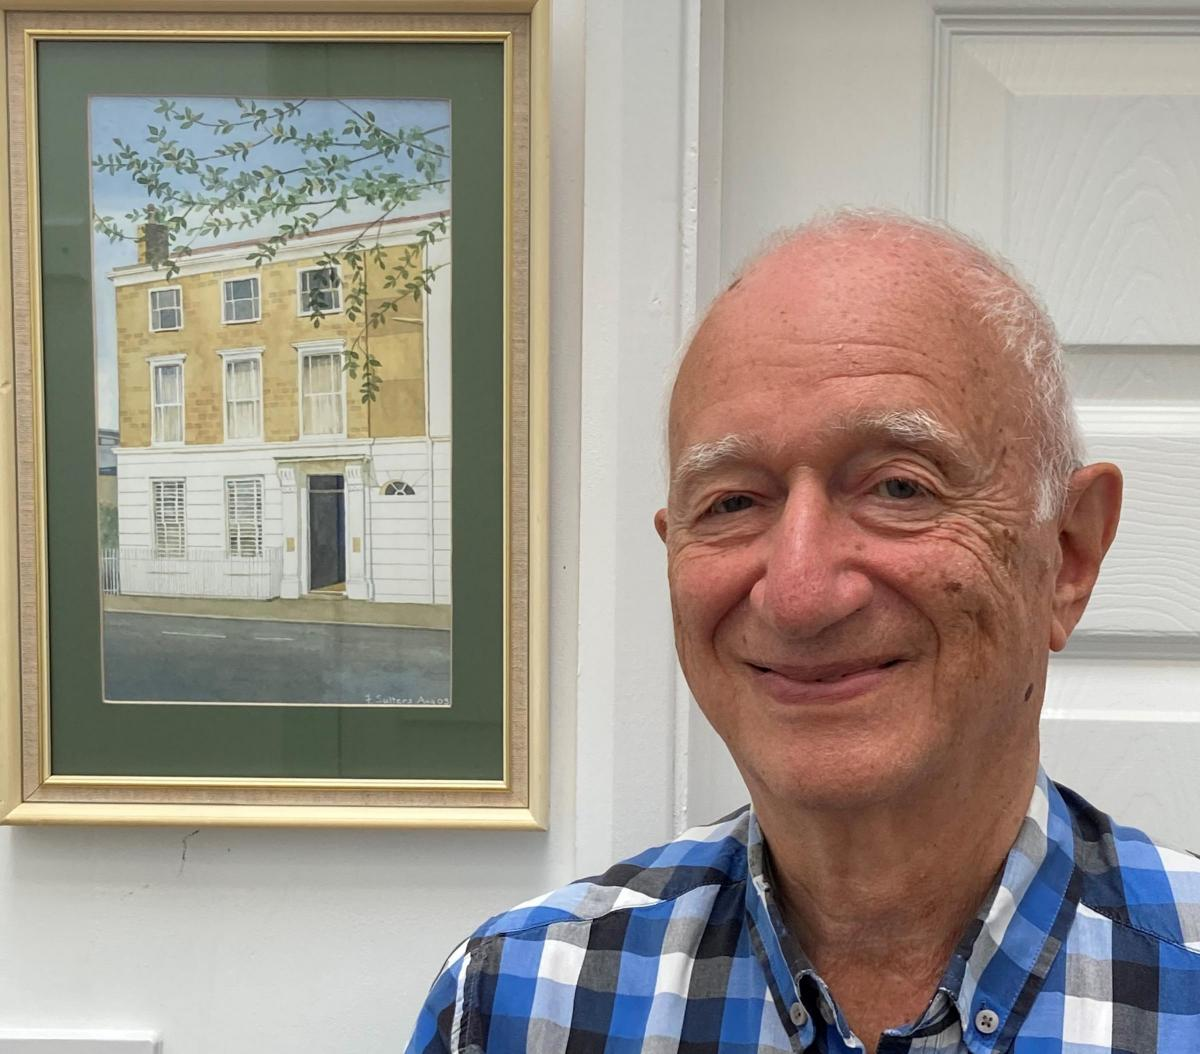 Isle of Wight dentist downs his drill after 60 years of treating patients